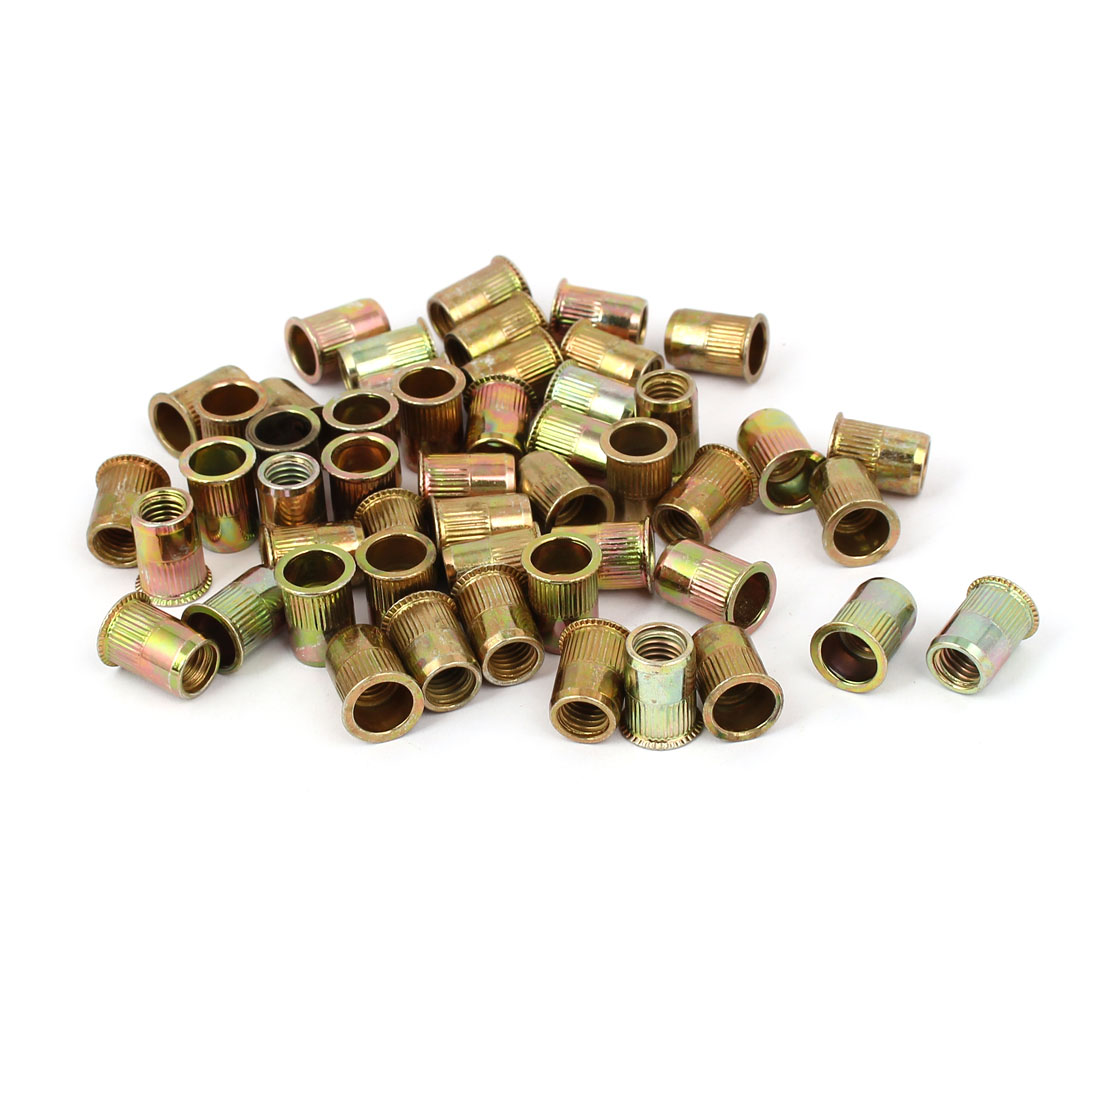 M8 x 16mm Flat Head Open Ended Rivet Nut Round Insert Nutsert 50PCS